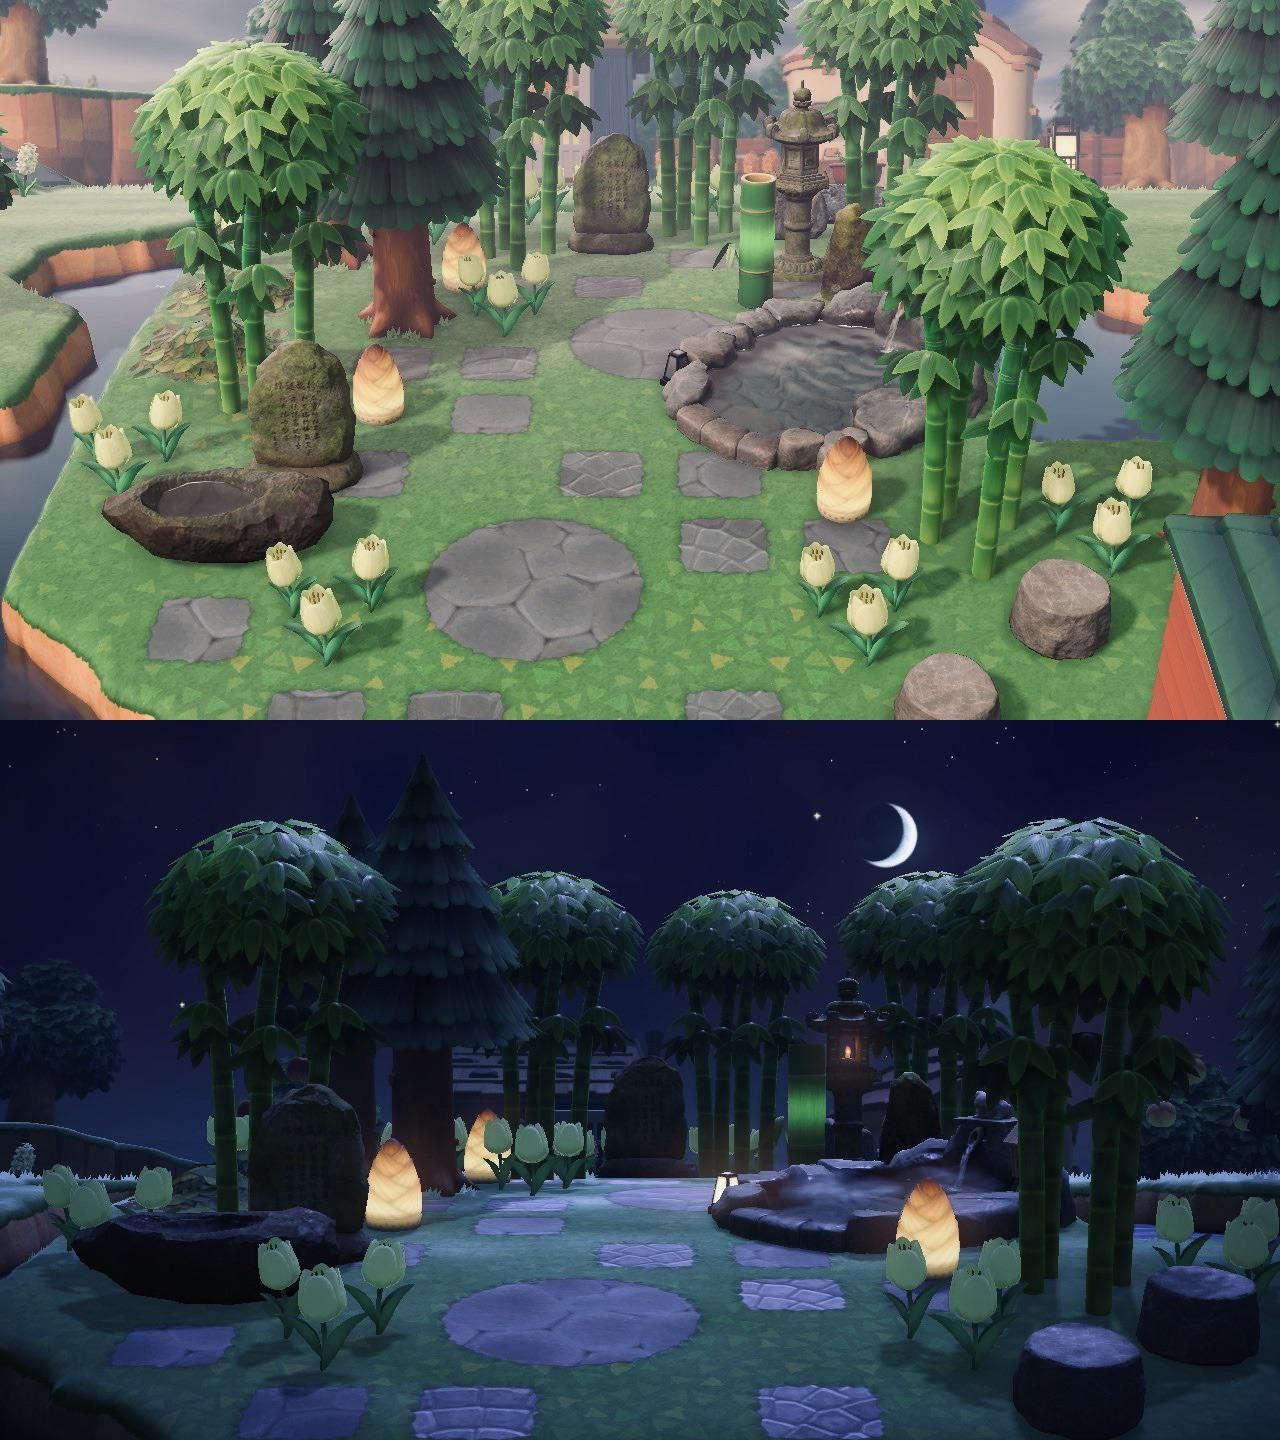 Bamboo grove in 2020 | Animal crossing 3ds, Animal ...